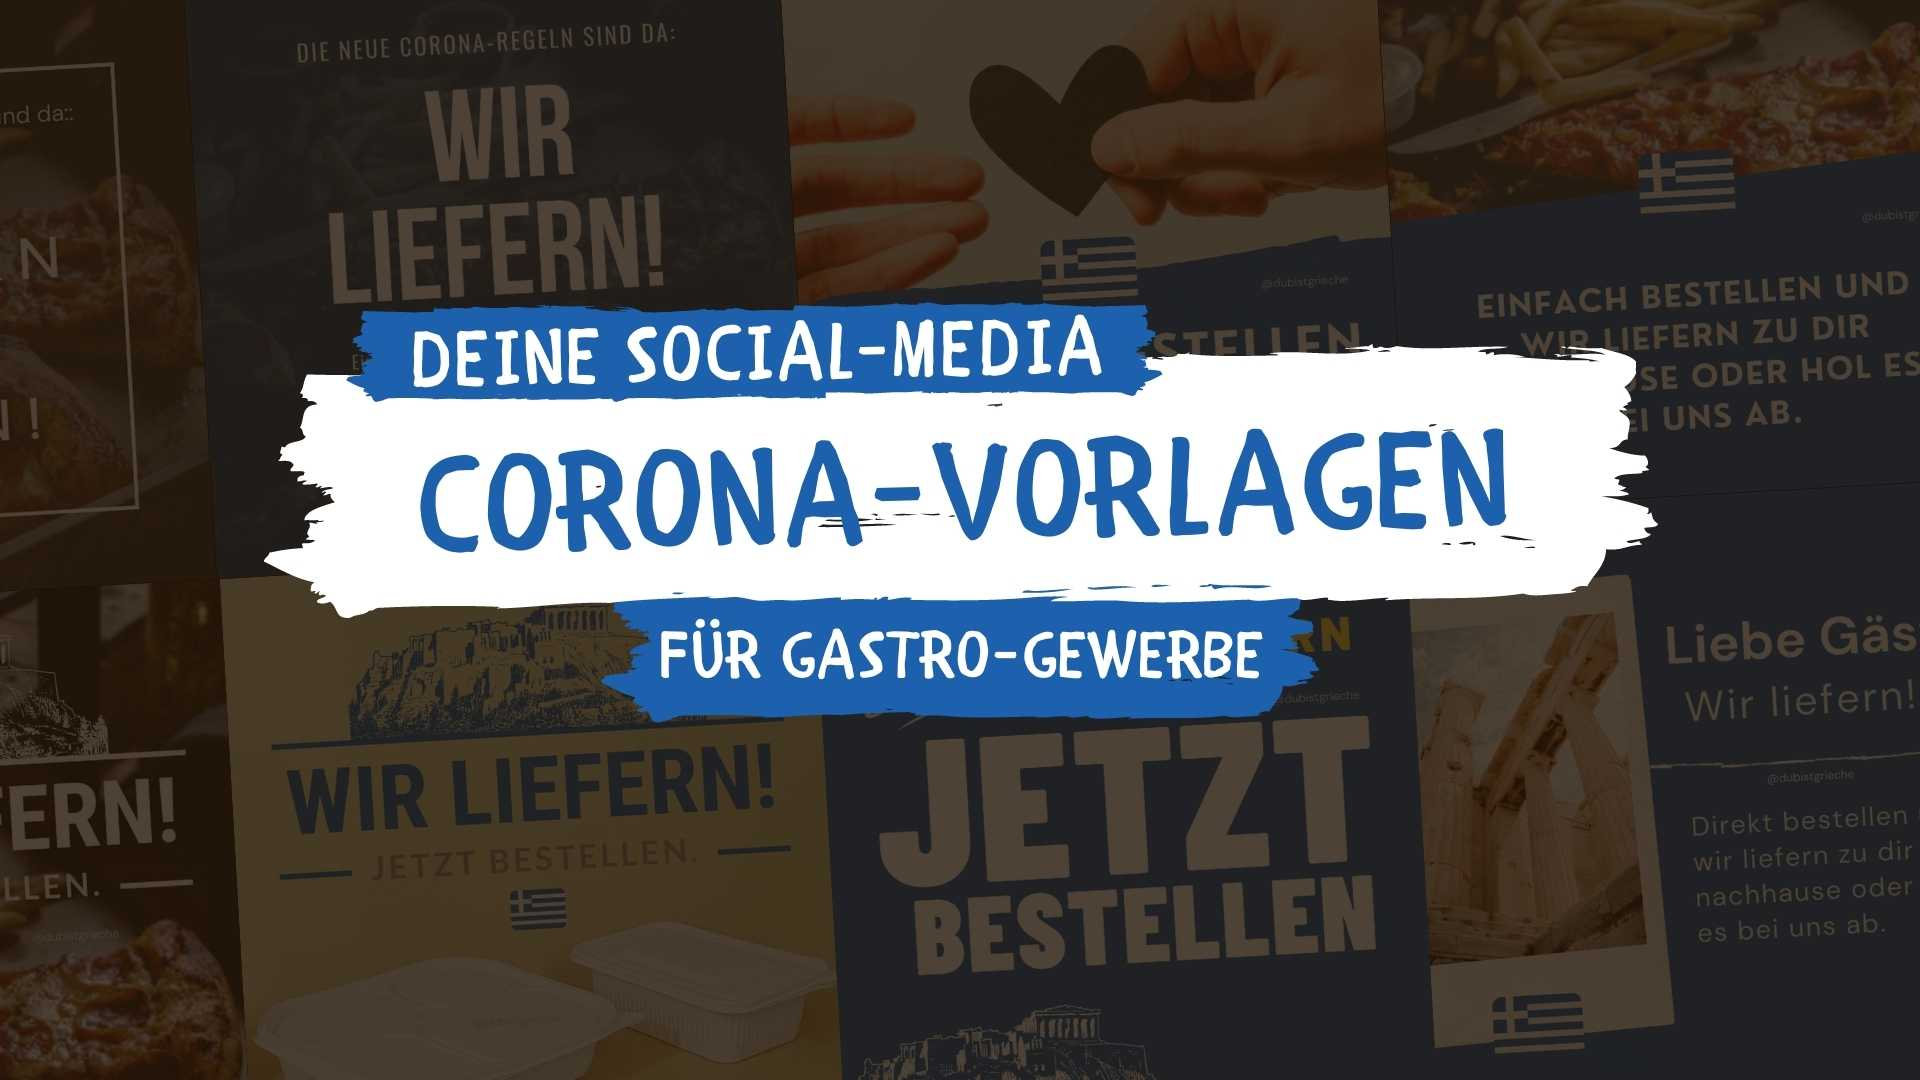 Corona Vorlagen Restaurant download